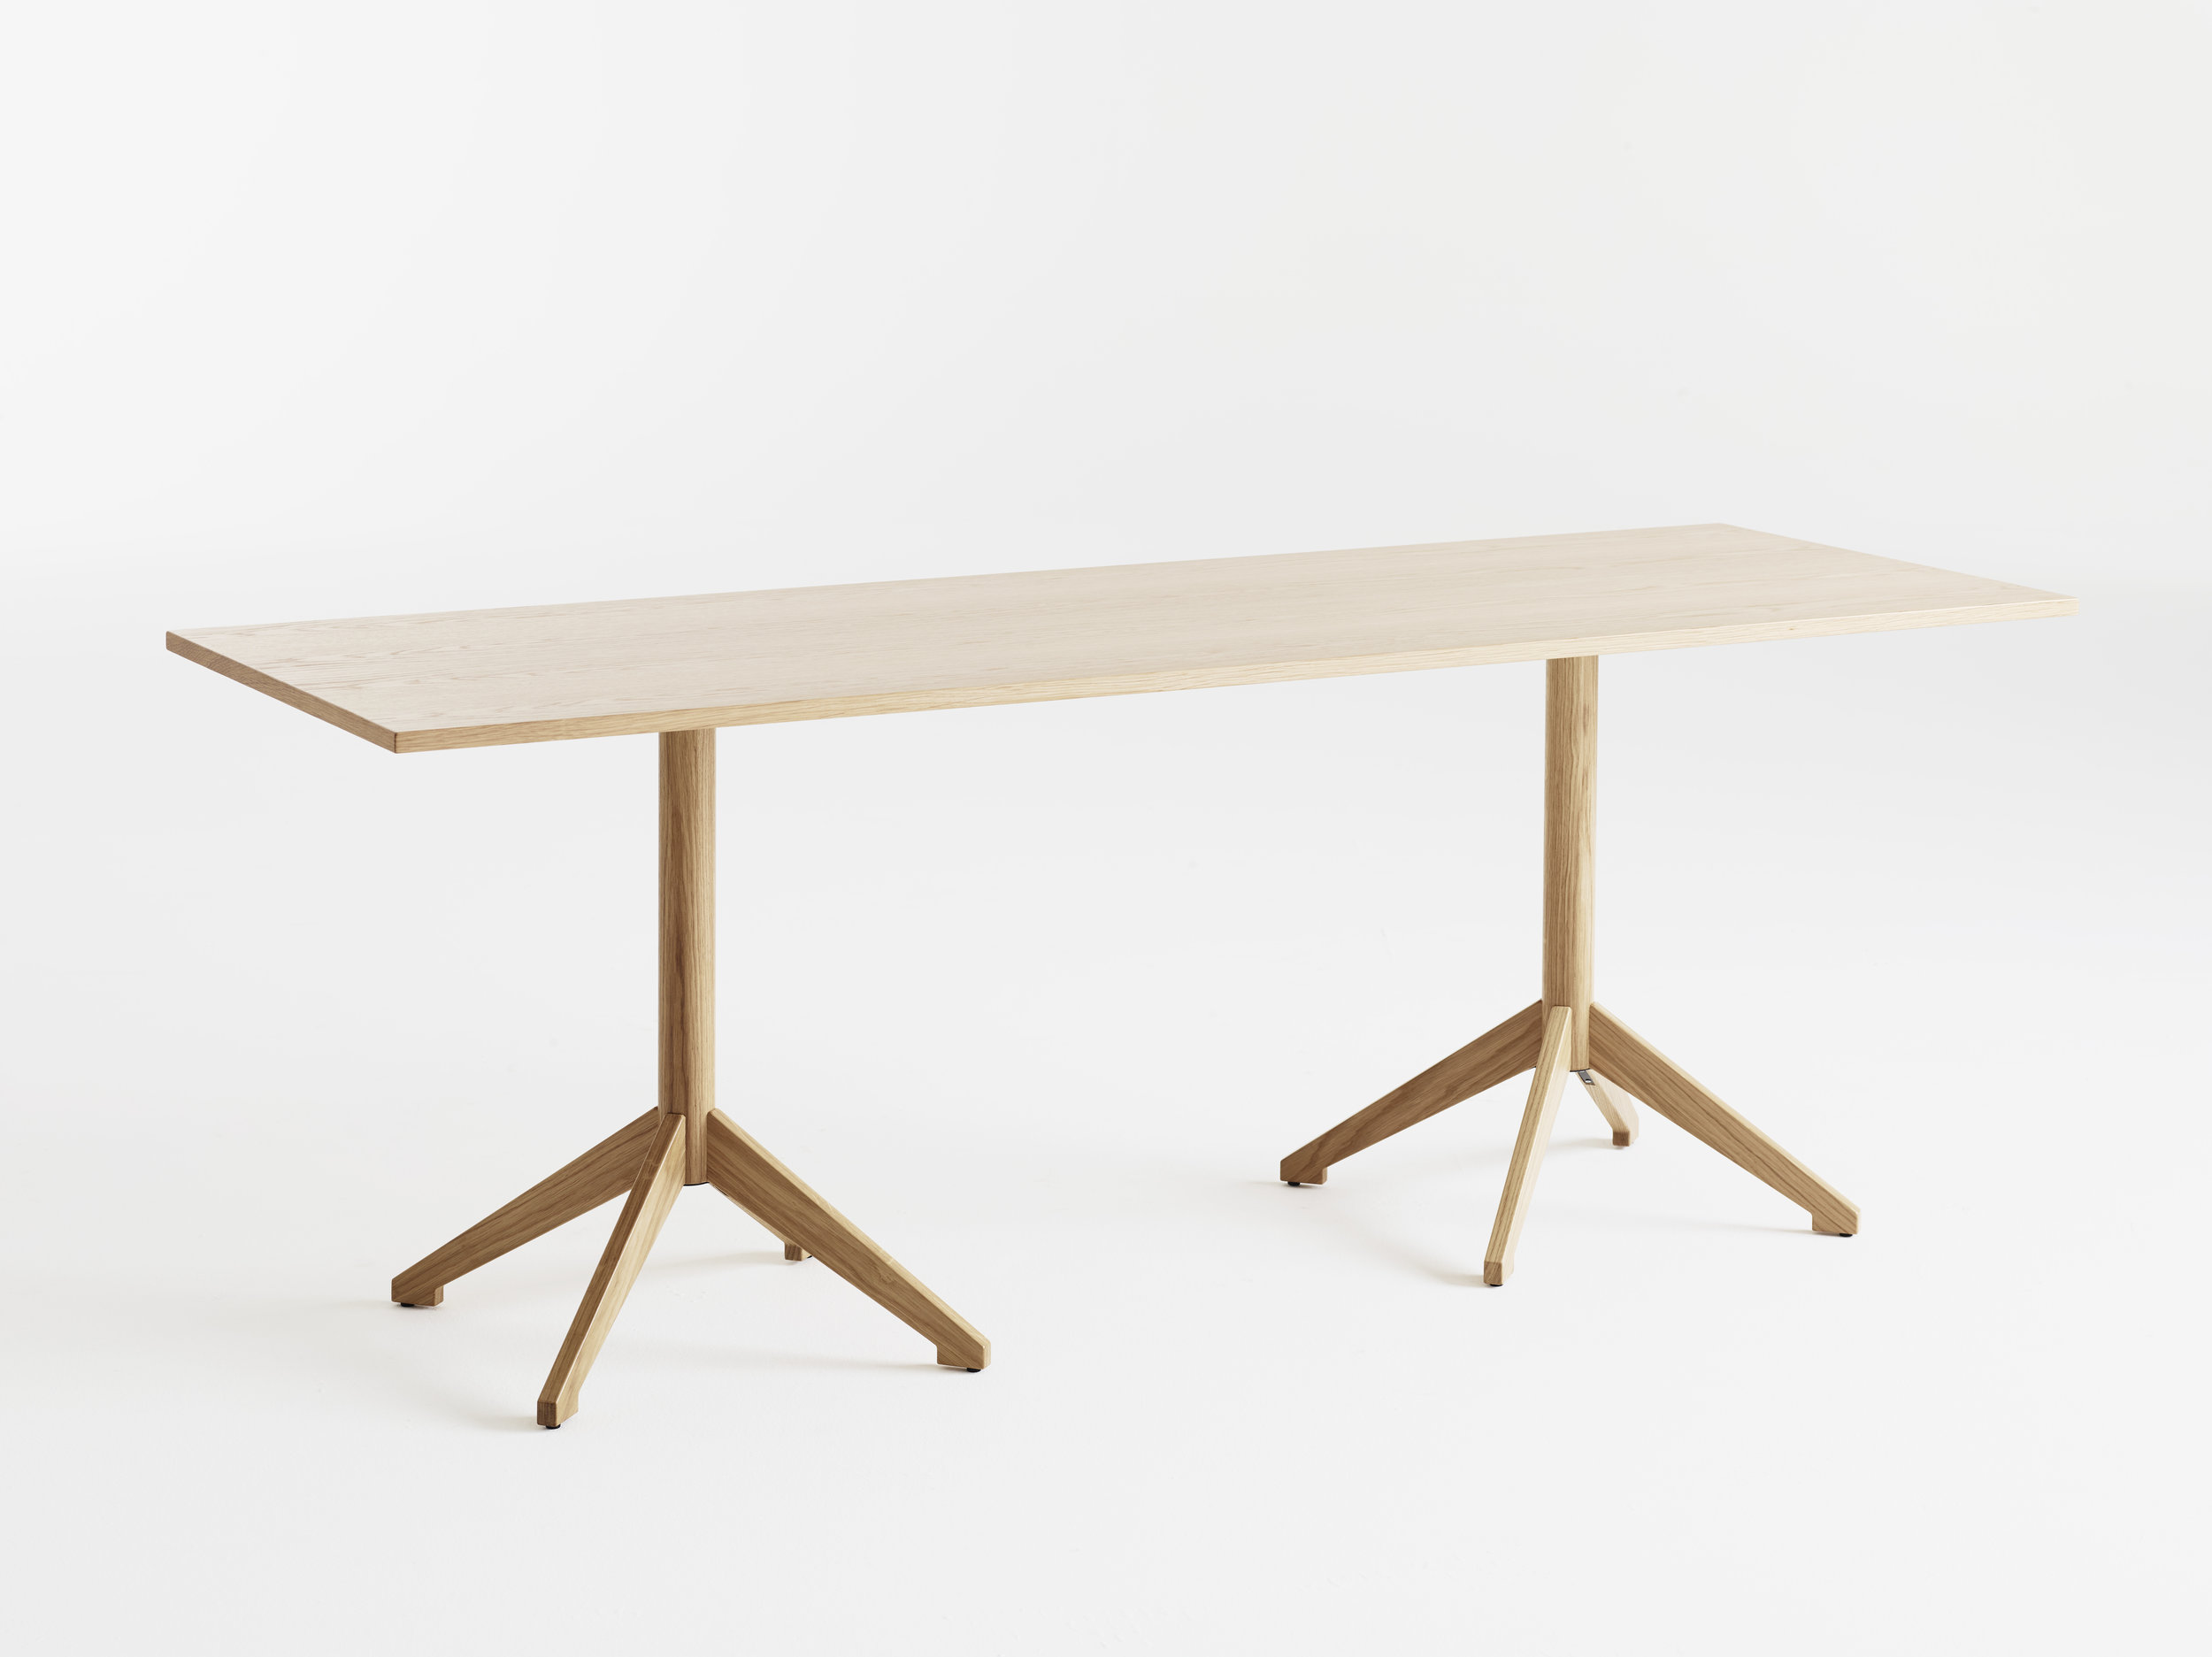 Locus table from Karl Andersson and Soner